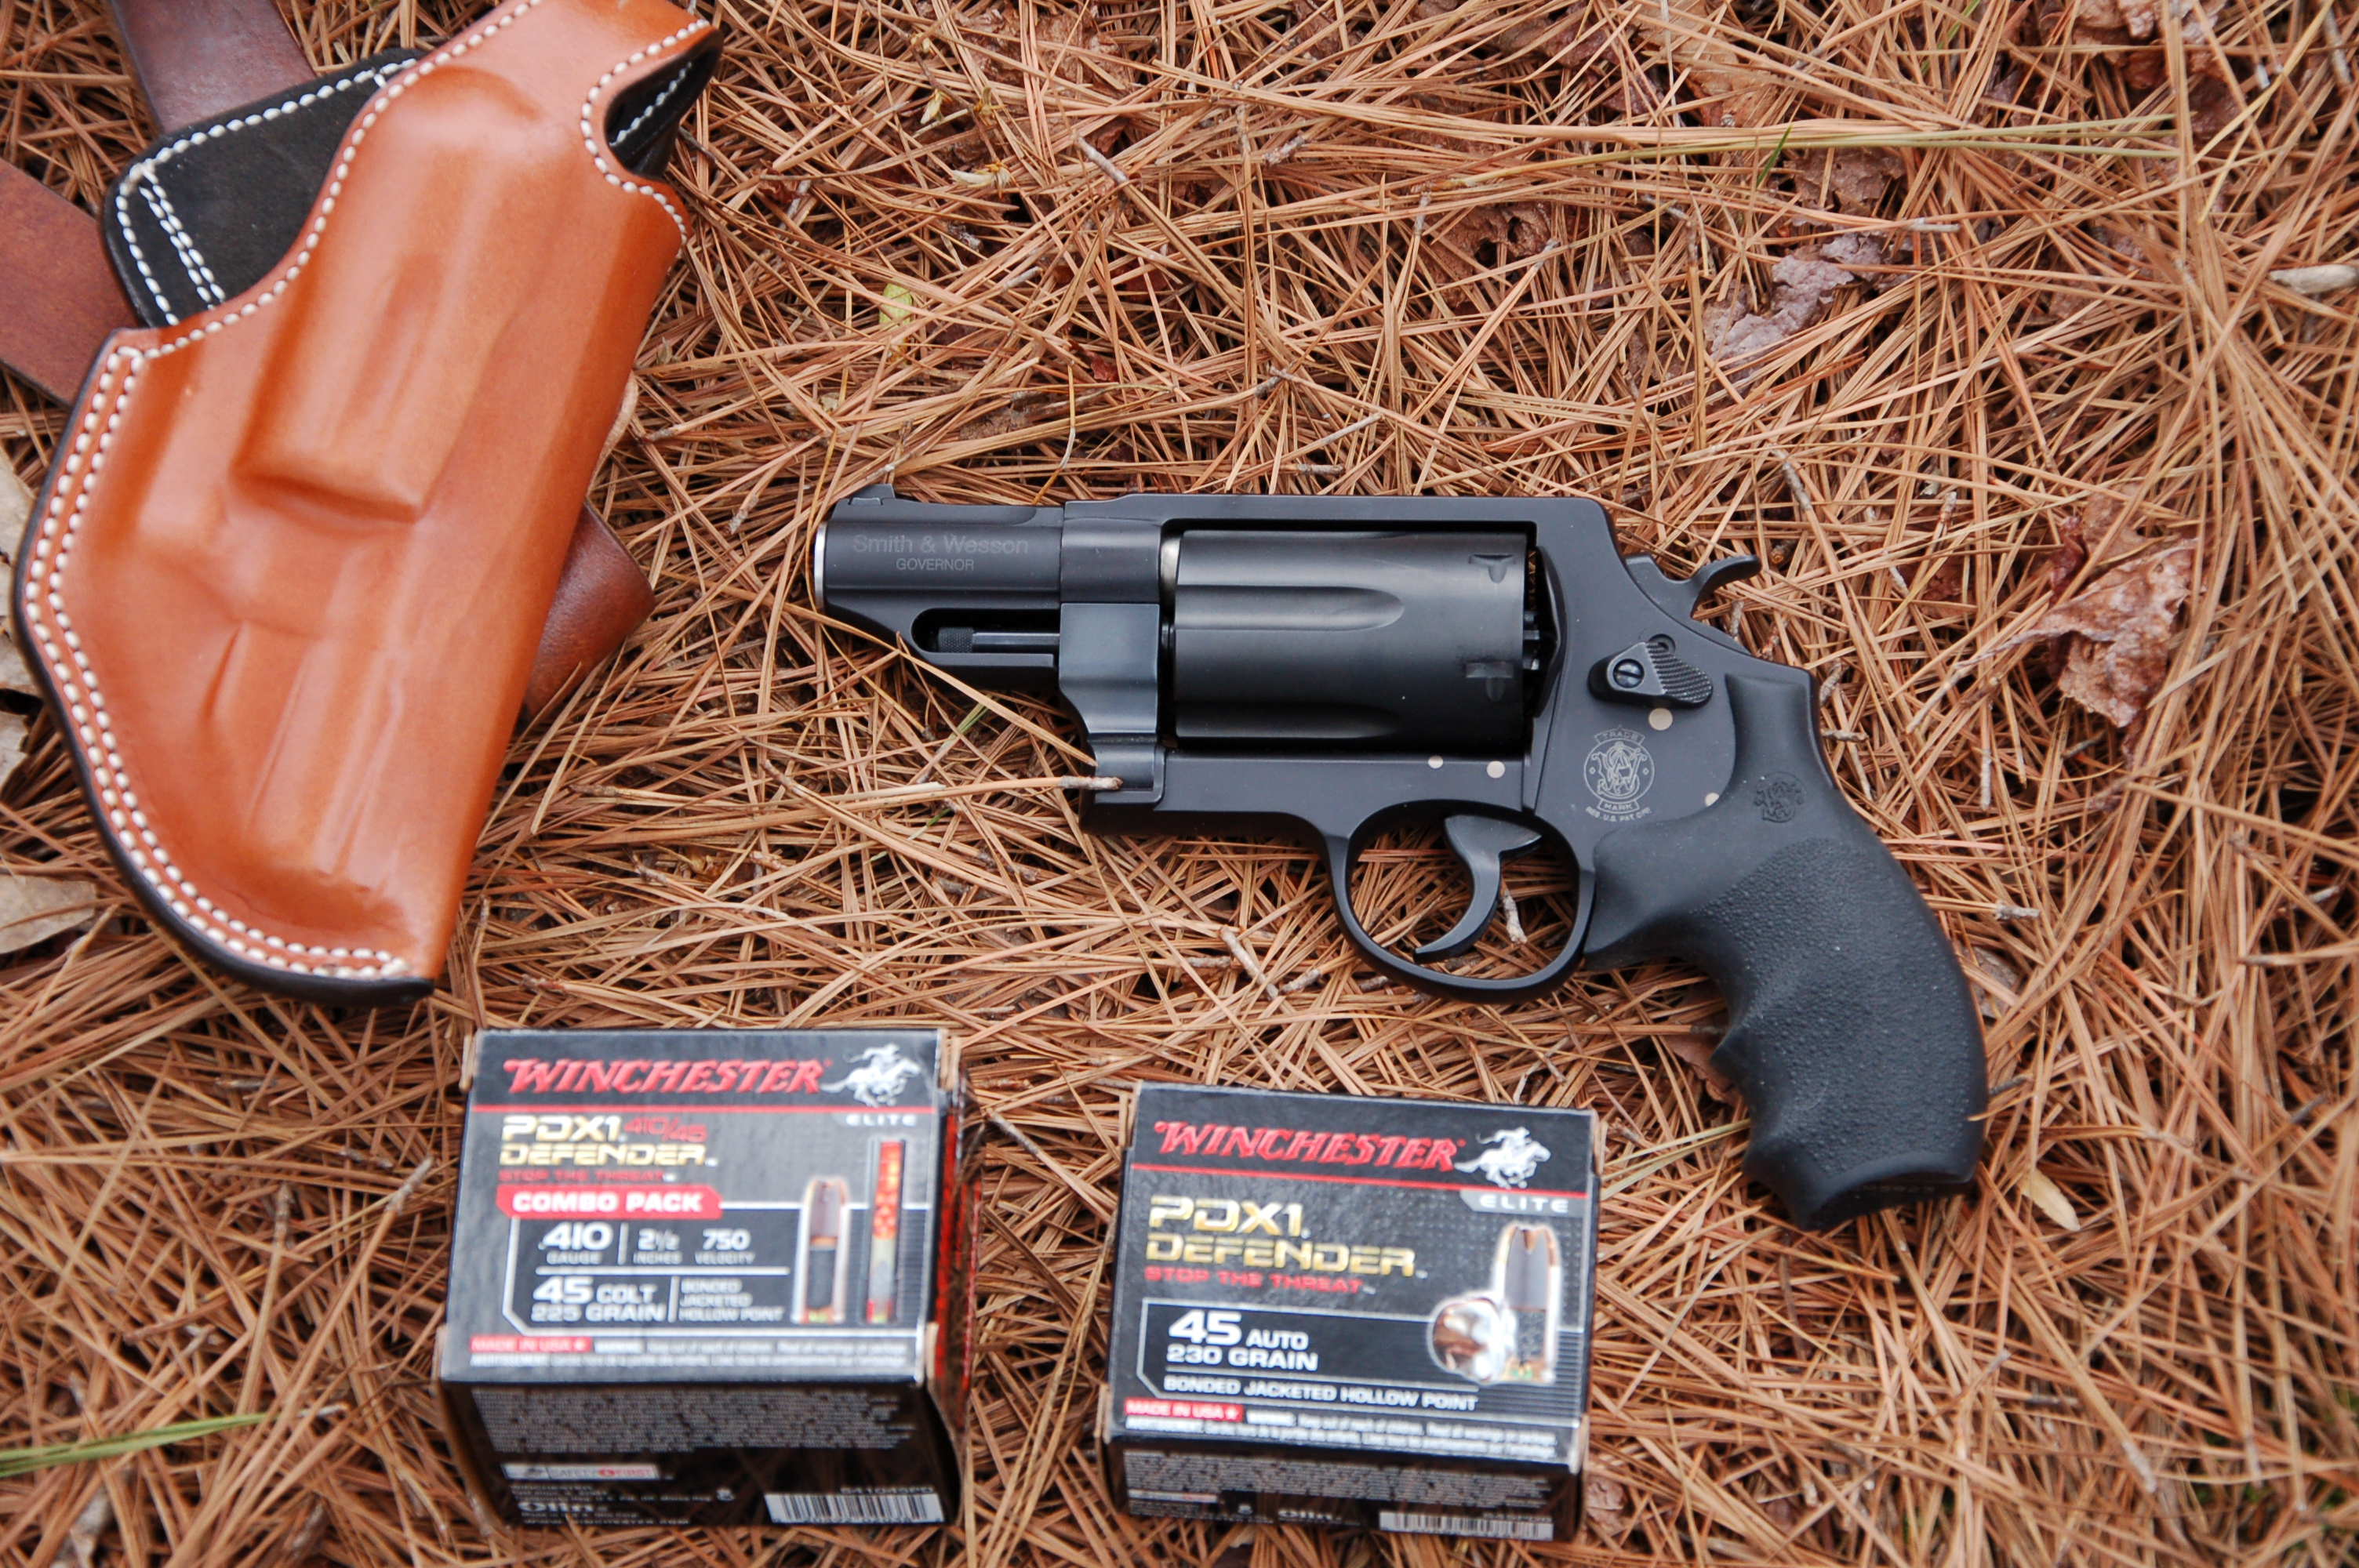 S&W Governor: A Solid Bug-out Handgun